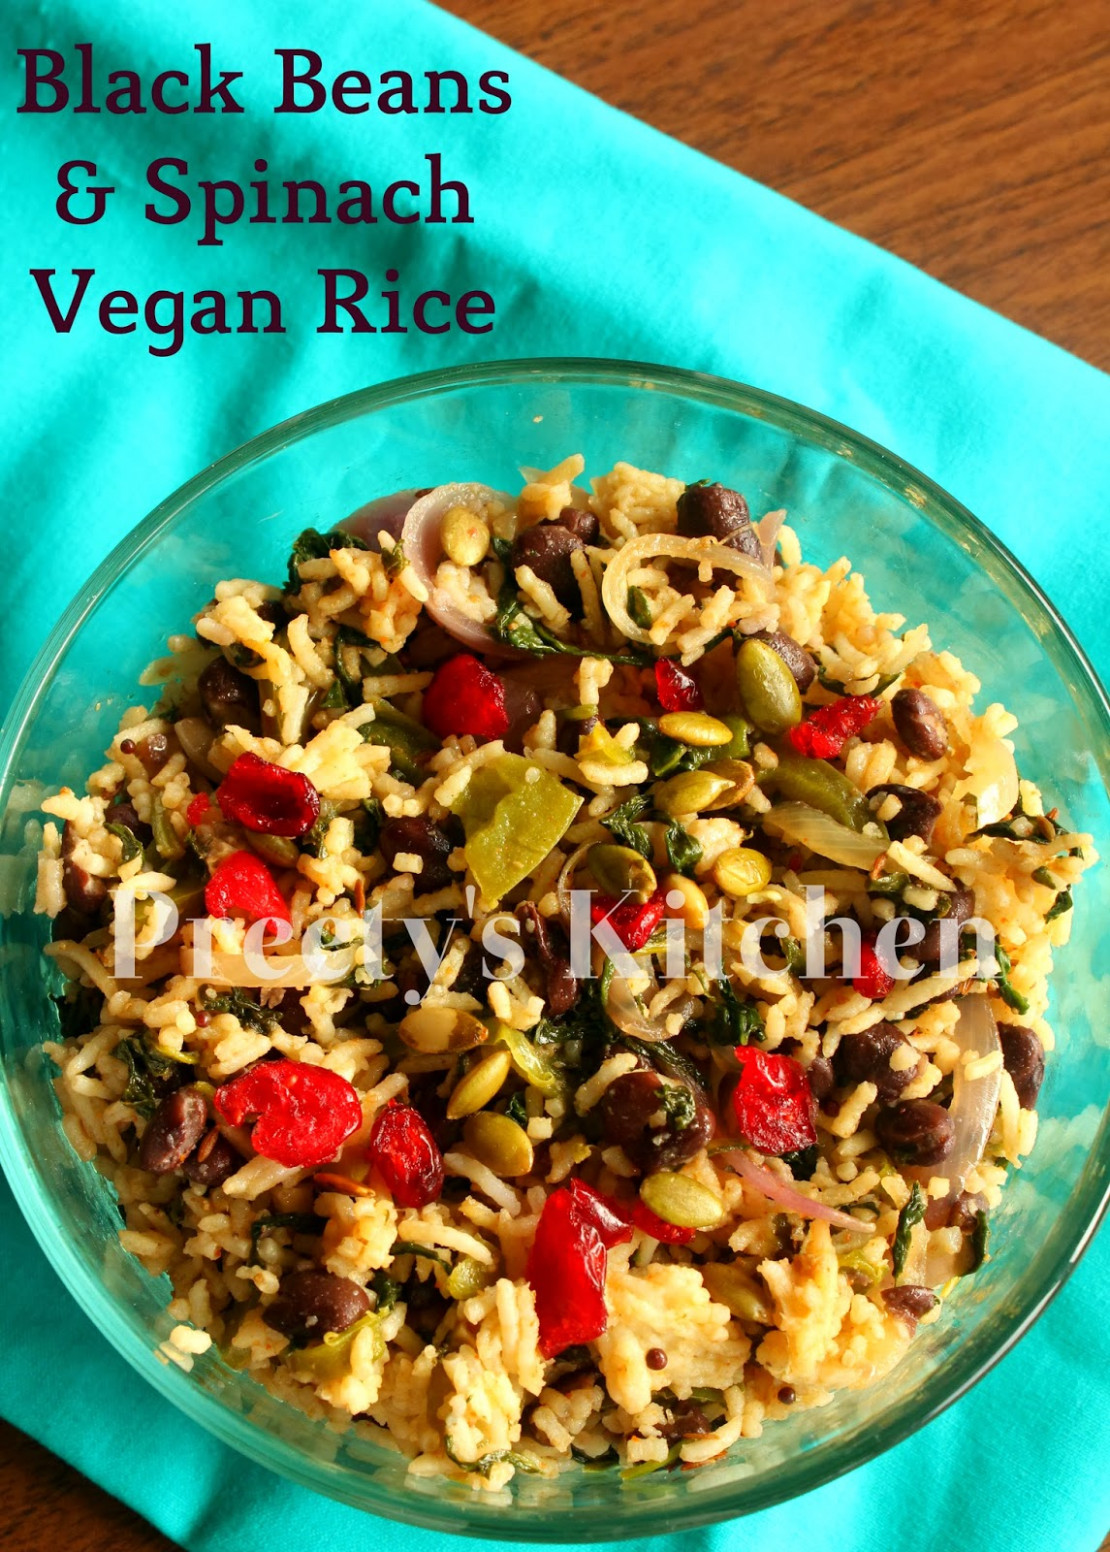 Preety's Kitchen: Black Bean & Spinach Vegan Rice Recipe - Recipes Vegetarian Black Beans